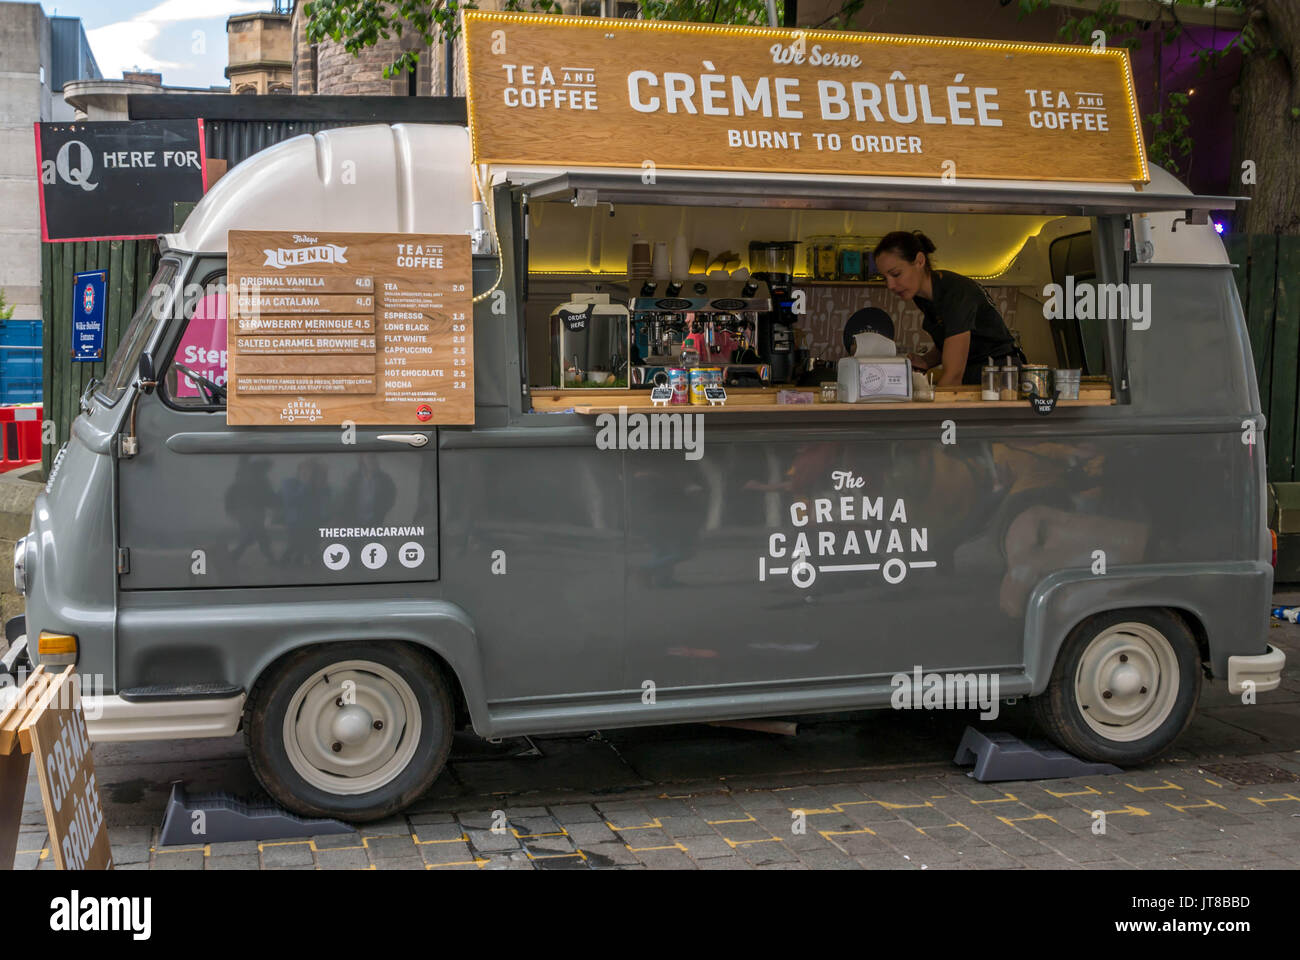 Edinburgh, Scotland, UK, August 7th 2017.  A Fringe Festival outdoor food stall near Bristo Square and George Square. Creme Brulee tea and coffee food outlet in a converted old fashioned VW camper van - Stock Image